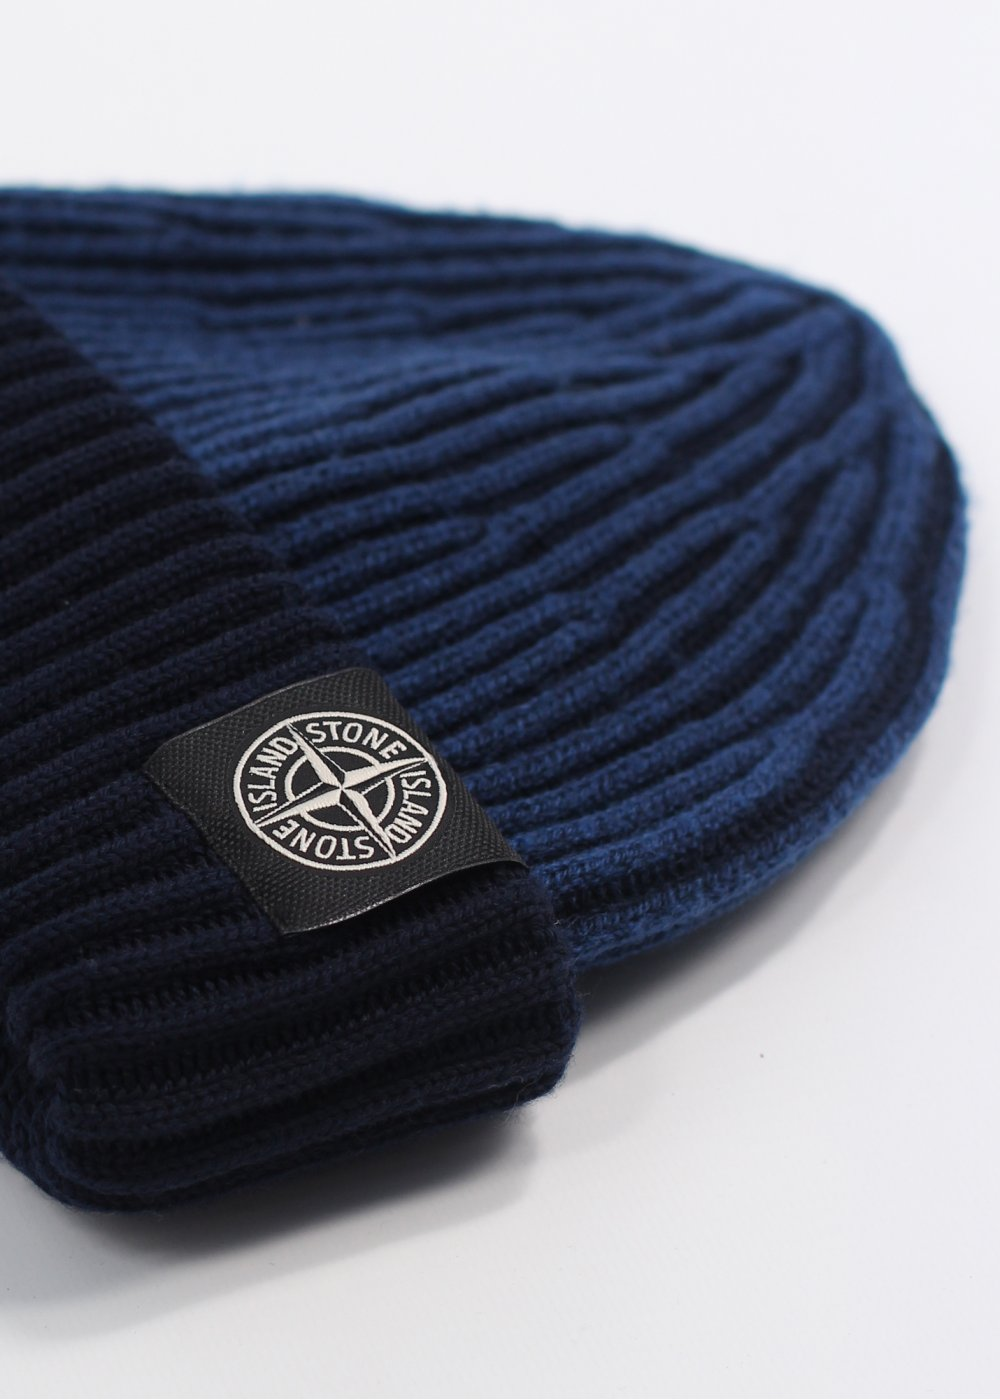 Vintage Watches For Sale >> Stone Island Logo Beanie Hat - Royal Blue